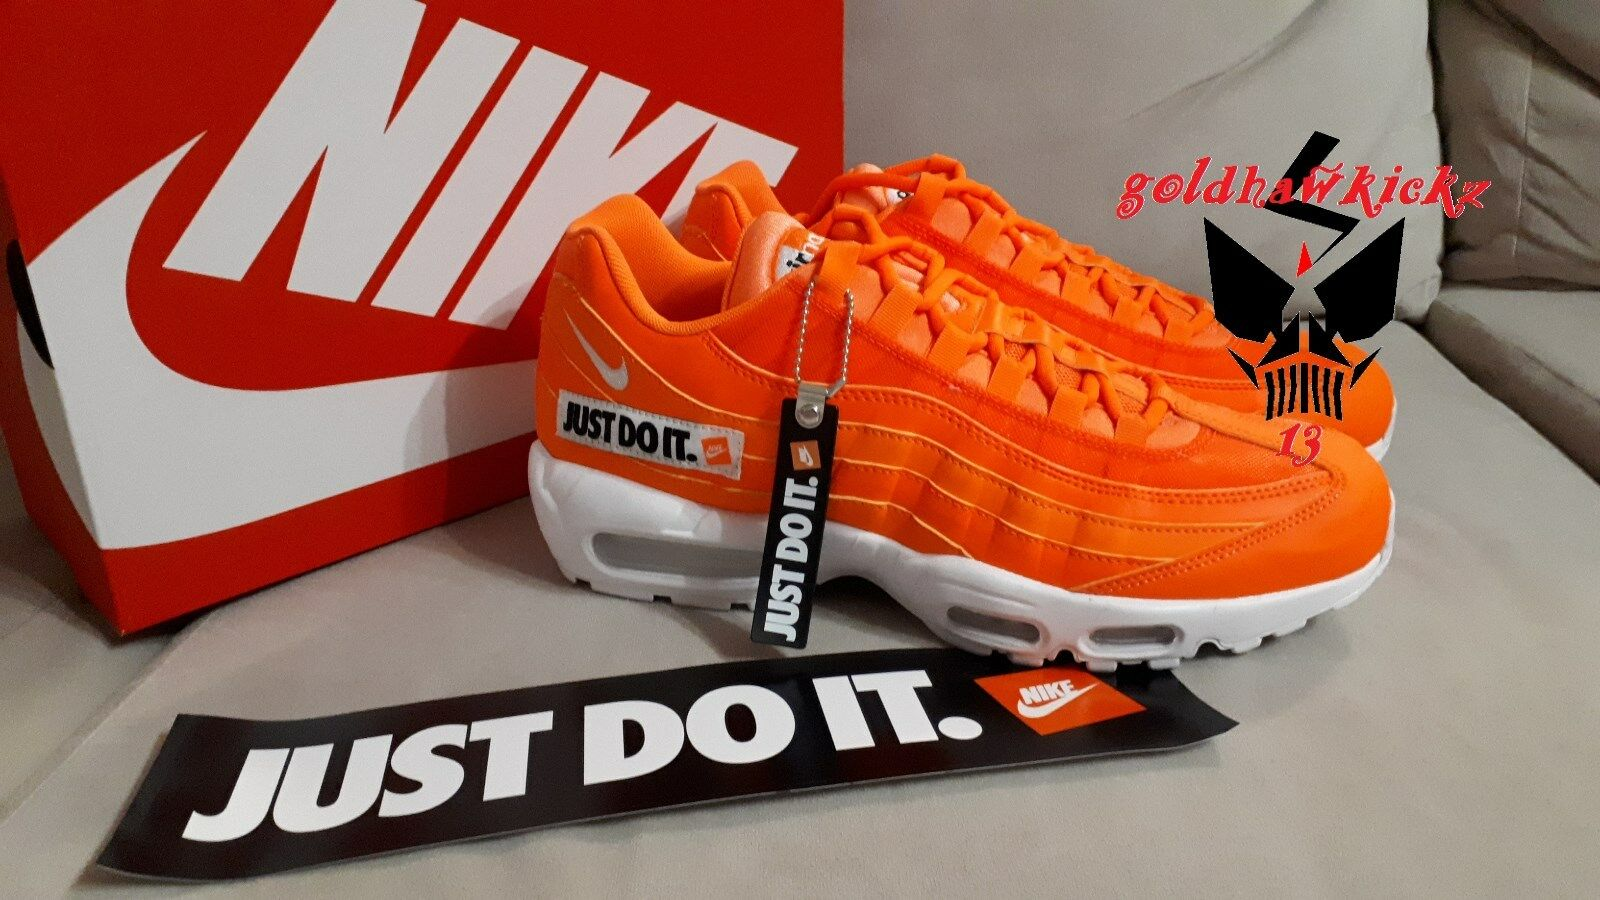 60af16a9ea7 Air Max 95 SE JUST DO IT av6246 800 total orange JDI am95 Nike  tyedbj1195-Men's Trainers